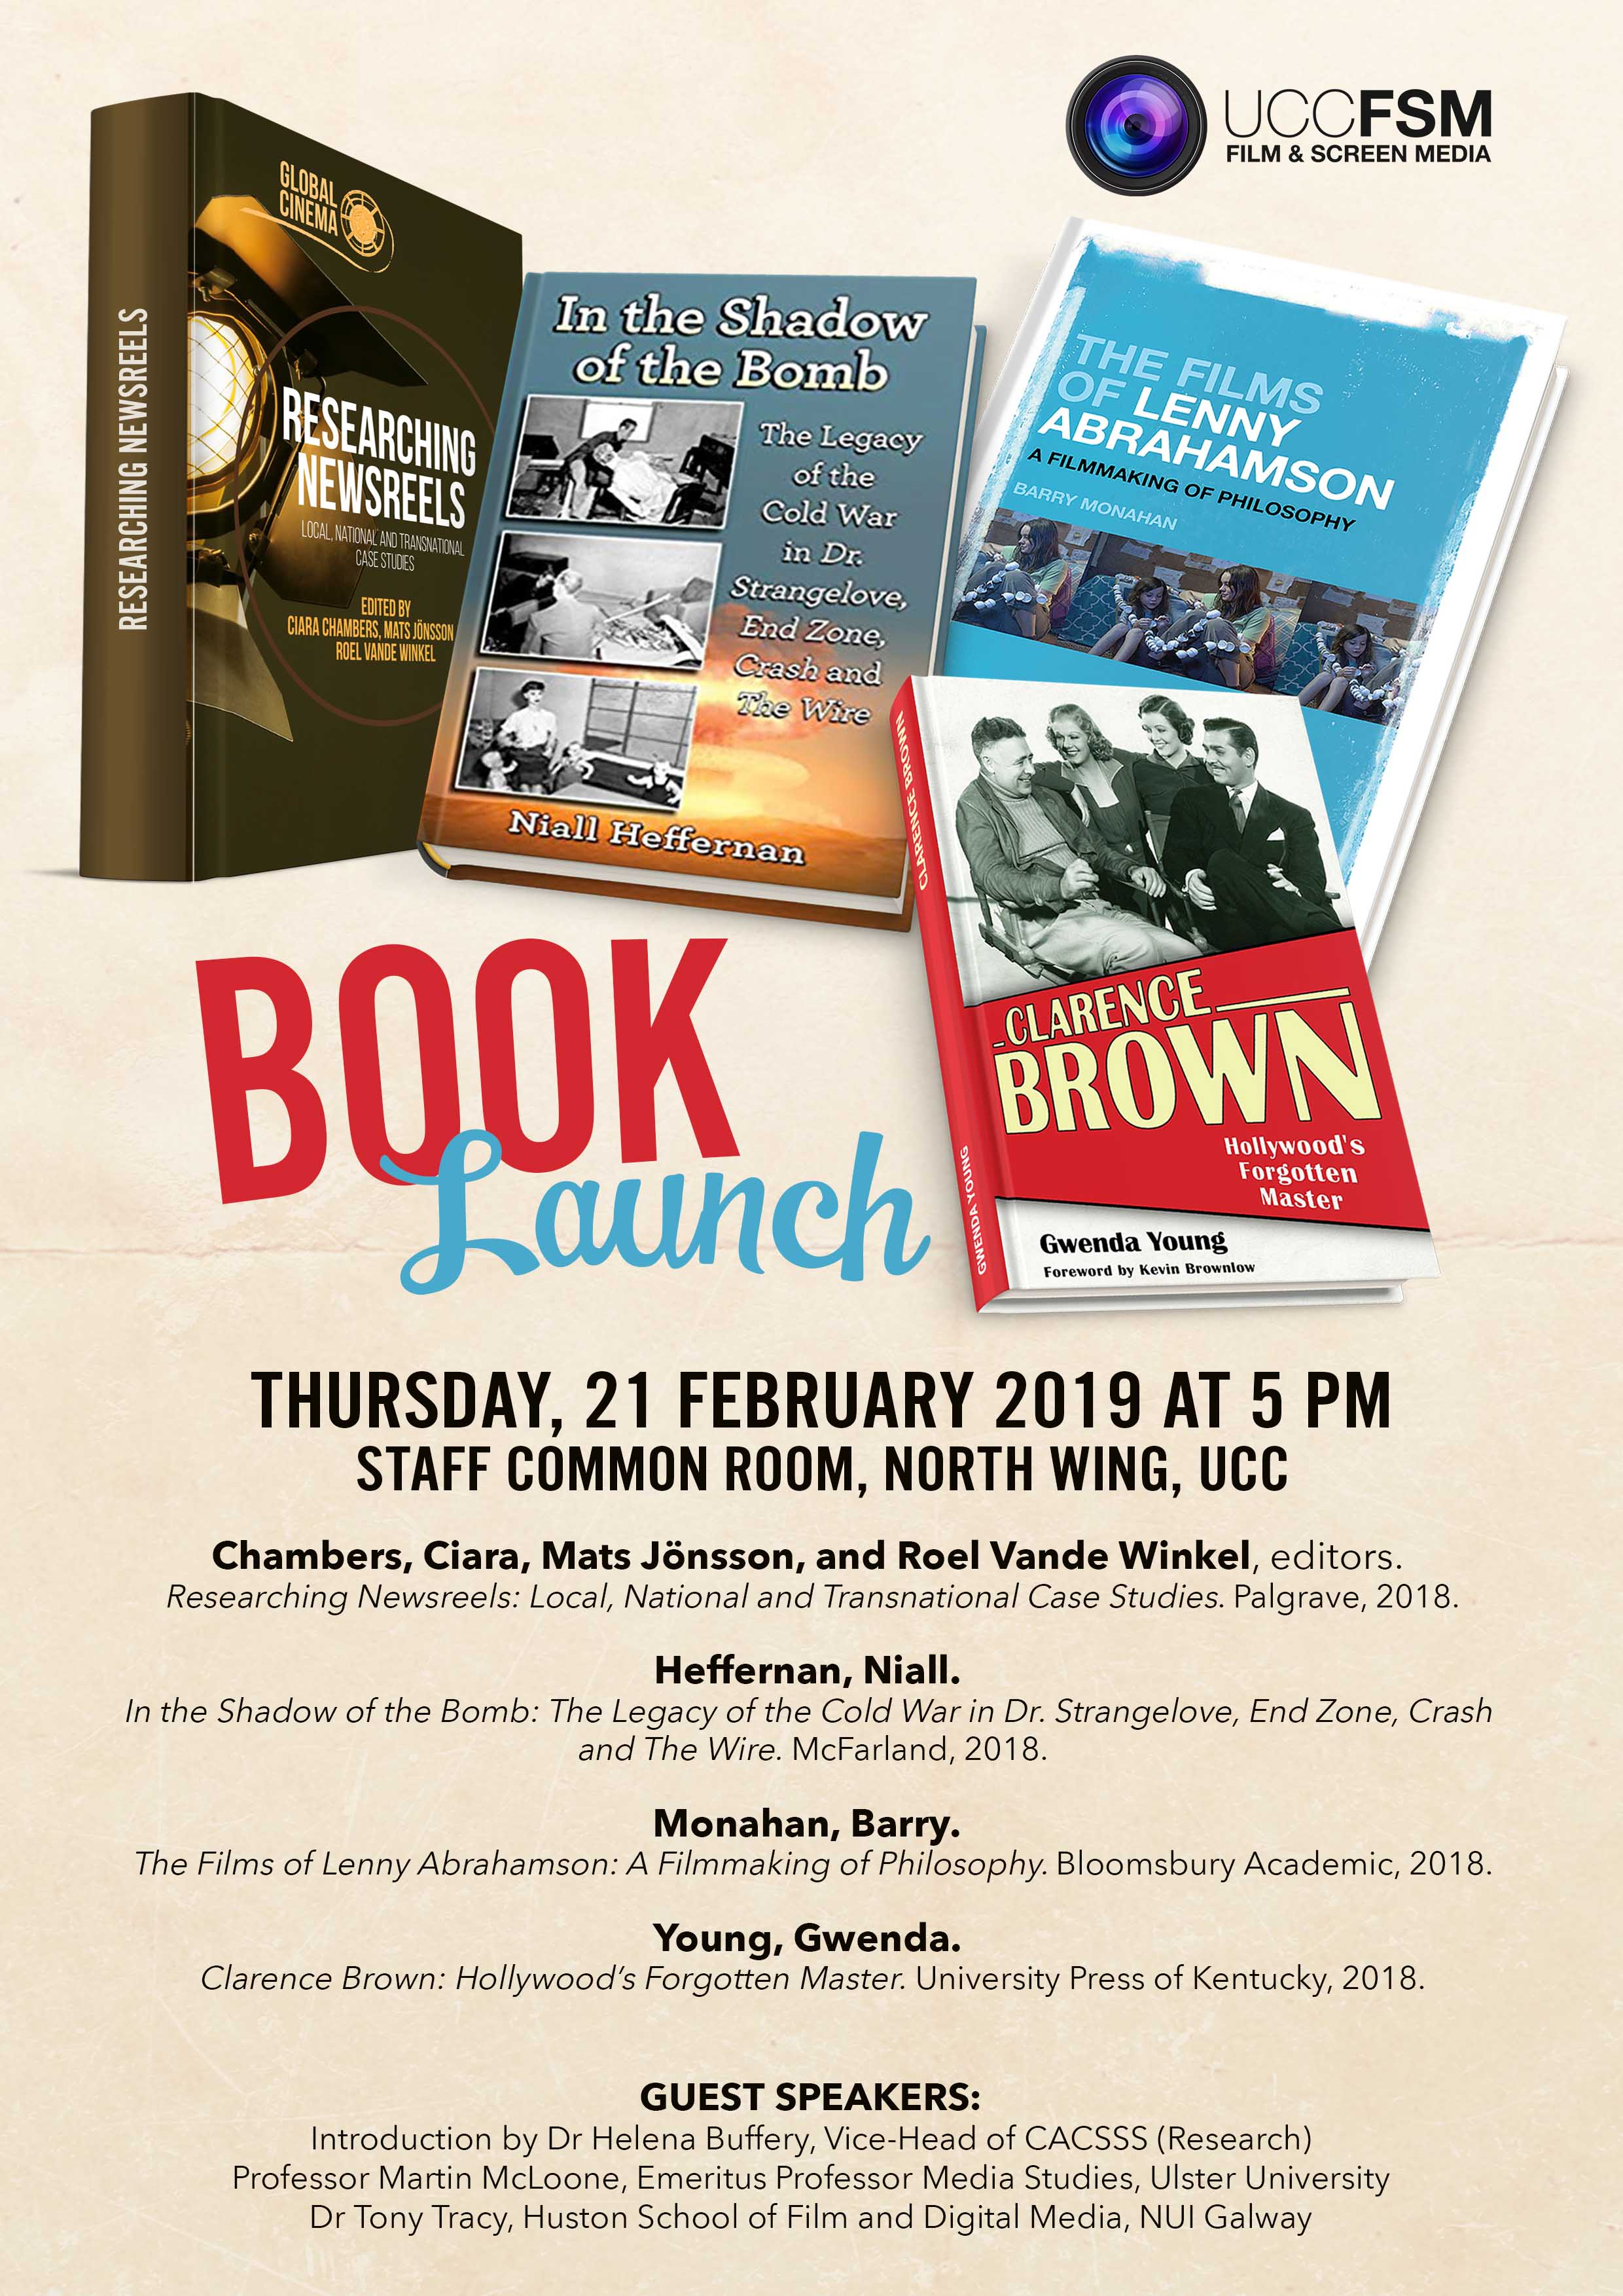 Film and Screen Media announces Book Launch Thursday 21st Feb, Staff Common Room.